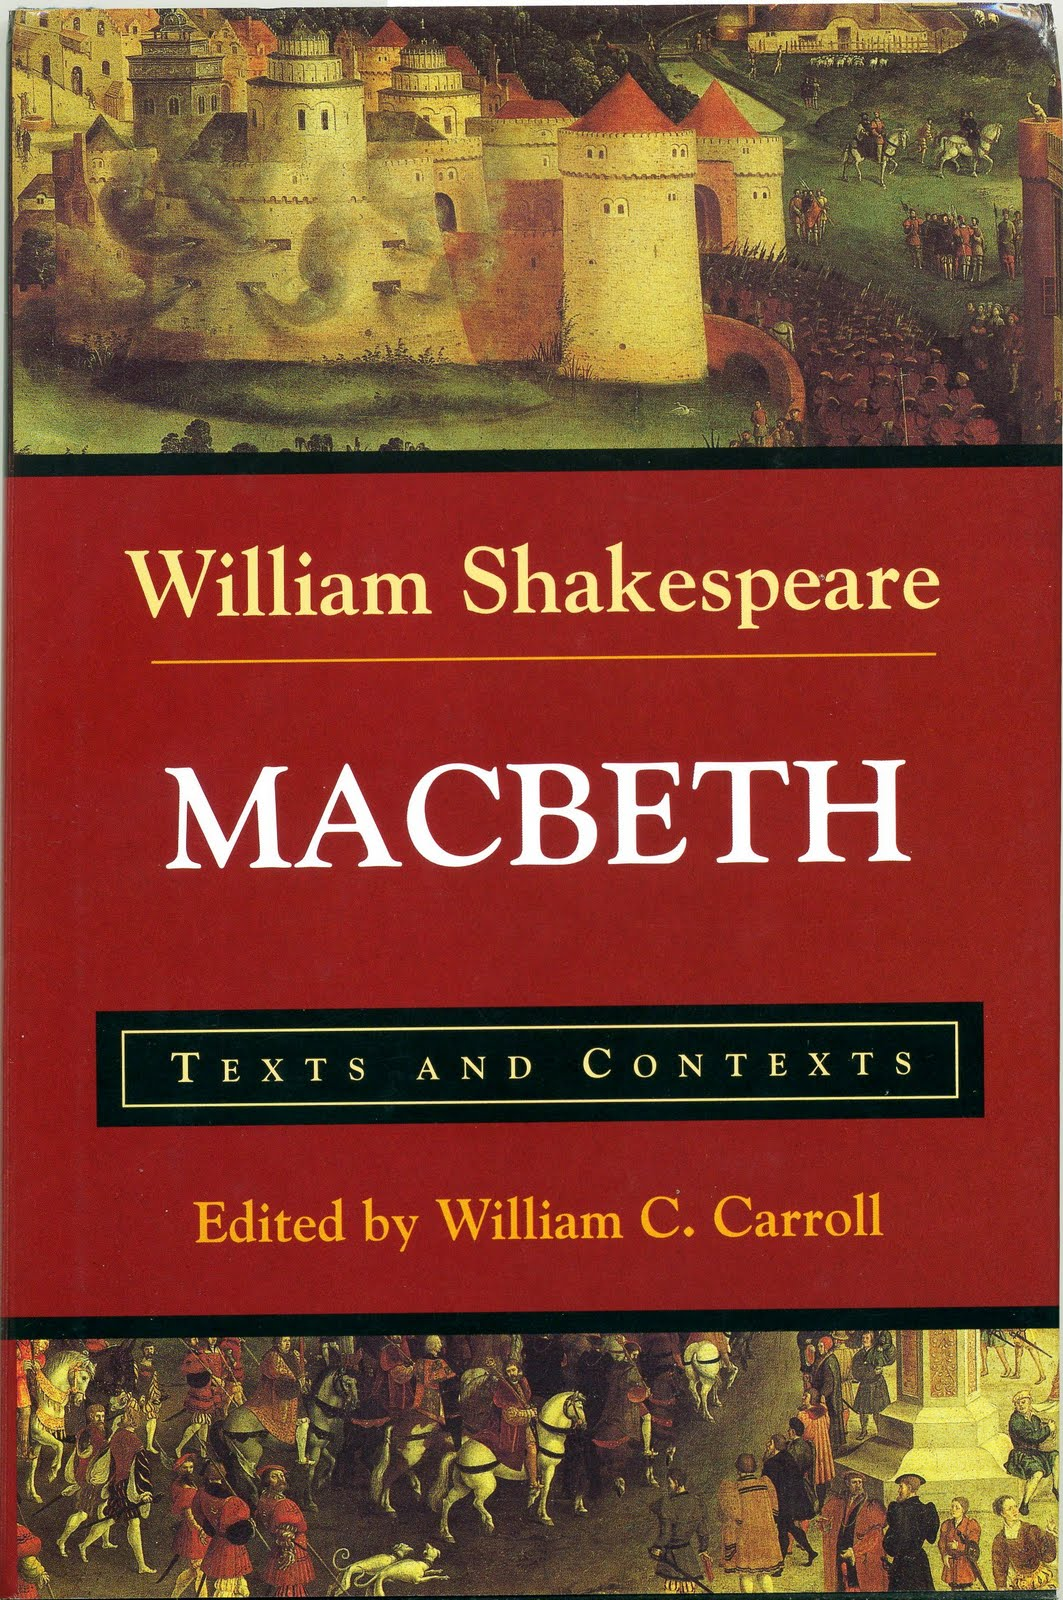 the characterization of macbeth in the william shakespeares play Analysis and discussion of characters in william shakespeare's macbeth  king  of scotland macduff, the nobleman who kills macbeth at the end of the play.